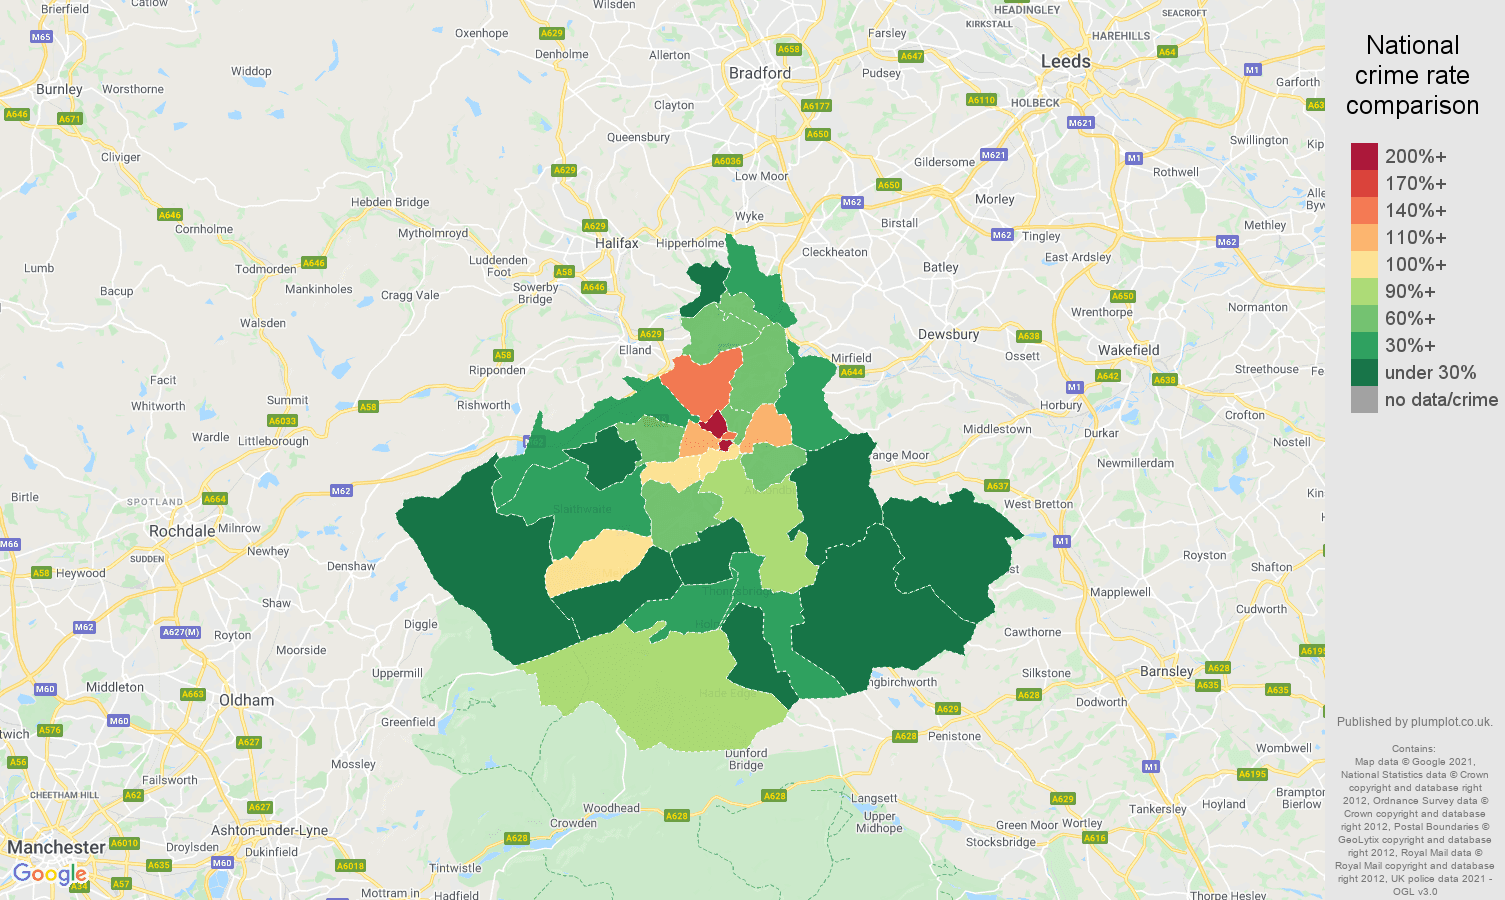 Huddersfield drugs crime rate comparison map